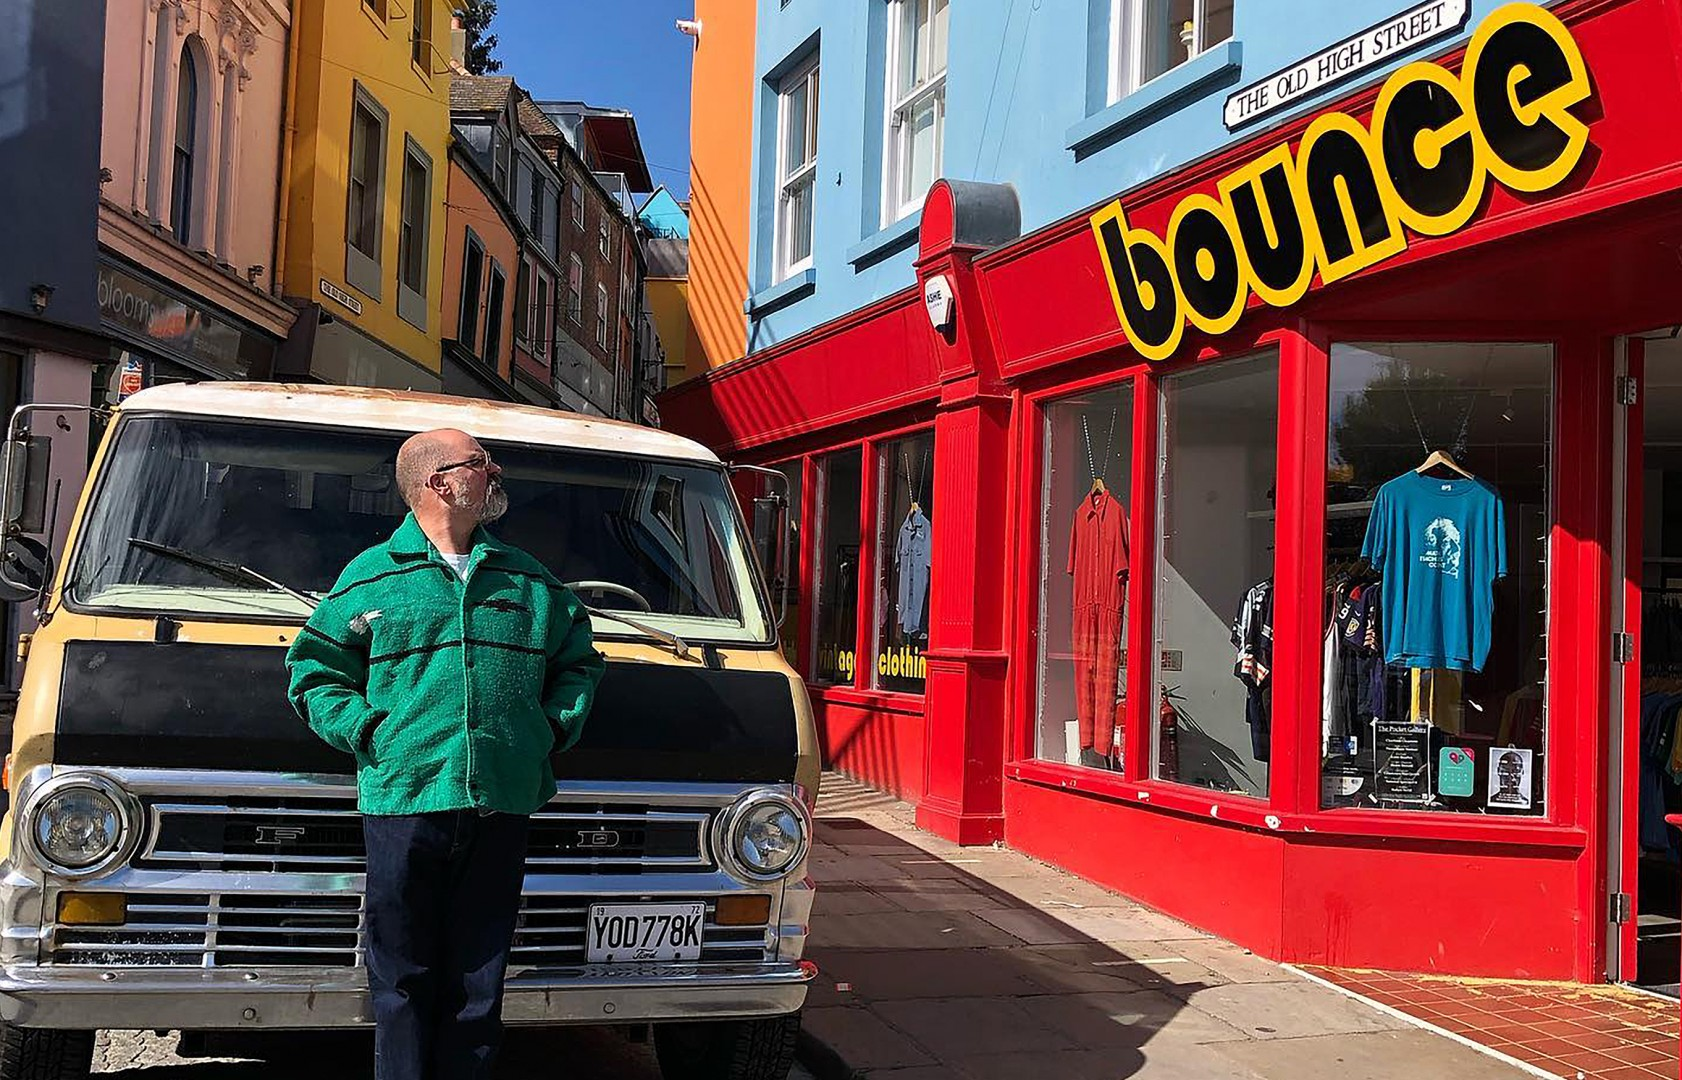 Bounce Vintage located on The Old Hight Street